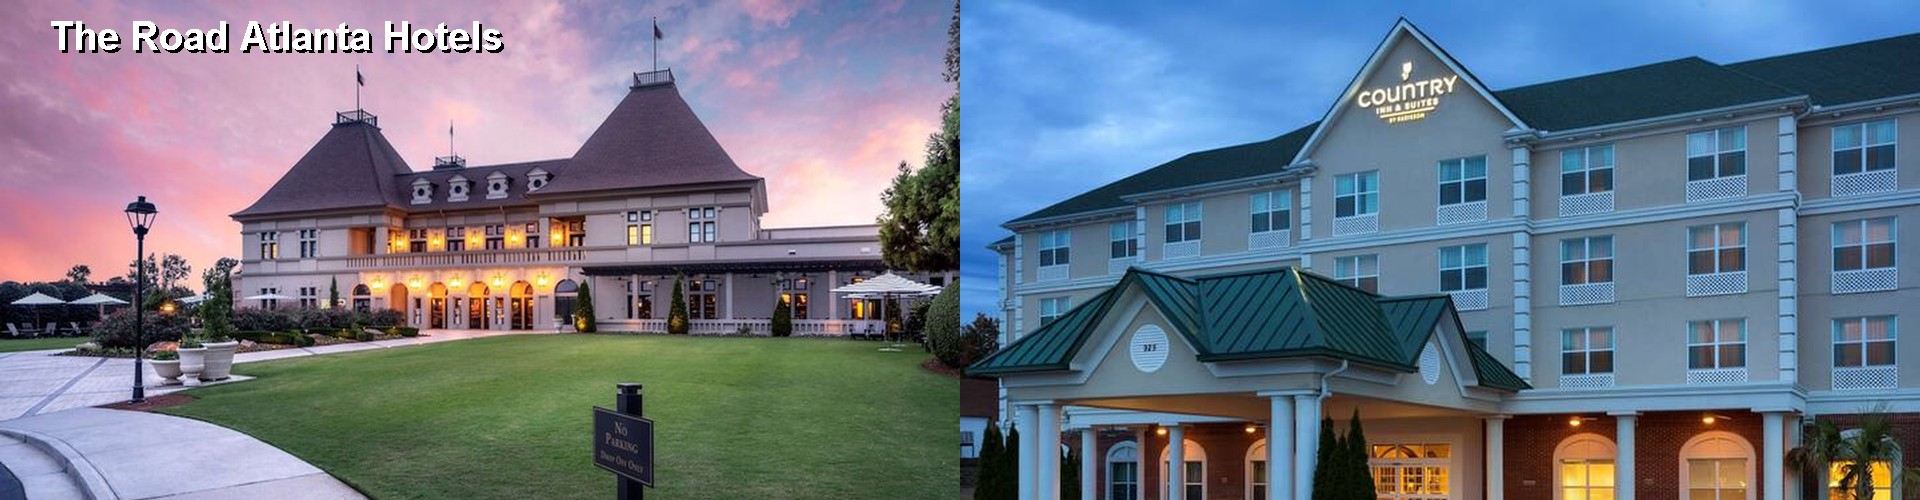 5 Best Hotels near The Road Atlanta